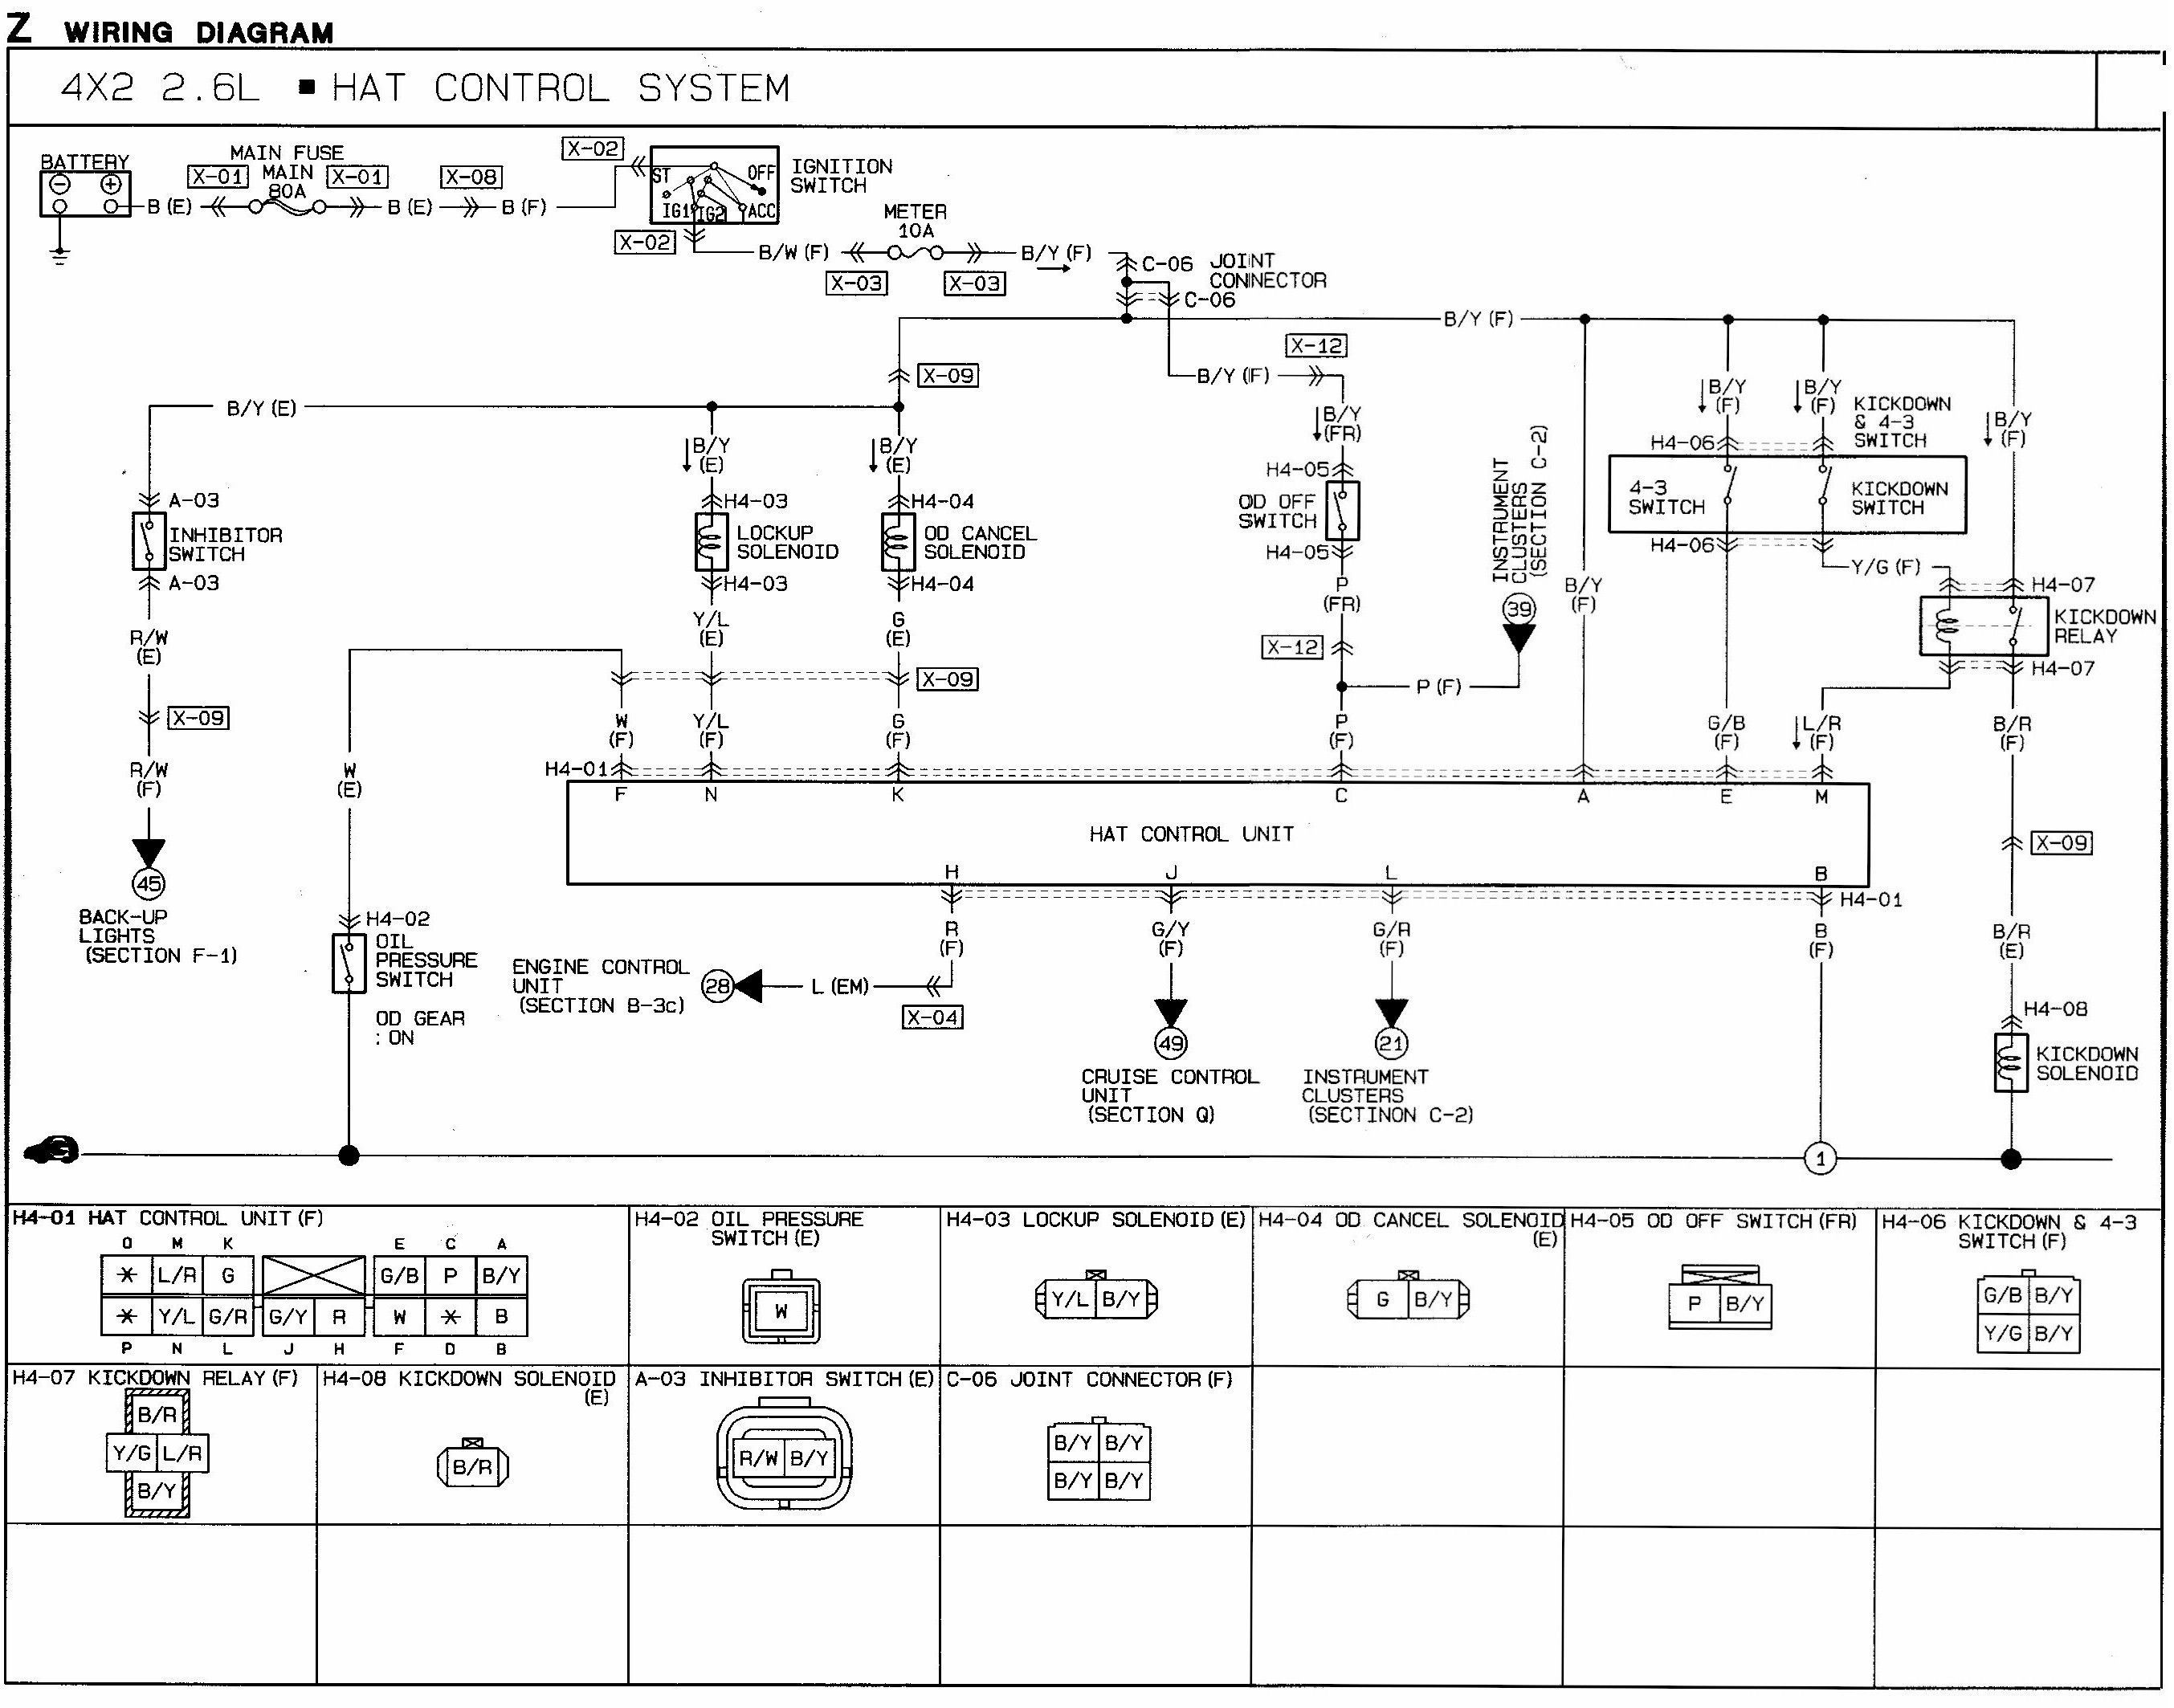 2004 Grand Cherokee Electrical Diagram Unique 97 Jeep Grand Cherokee Headlight Wiring Diagram Of 2004 Grand Cherokee Electrical Diagram